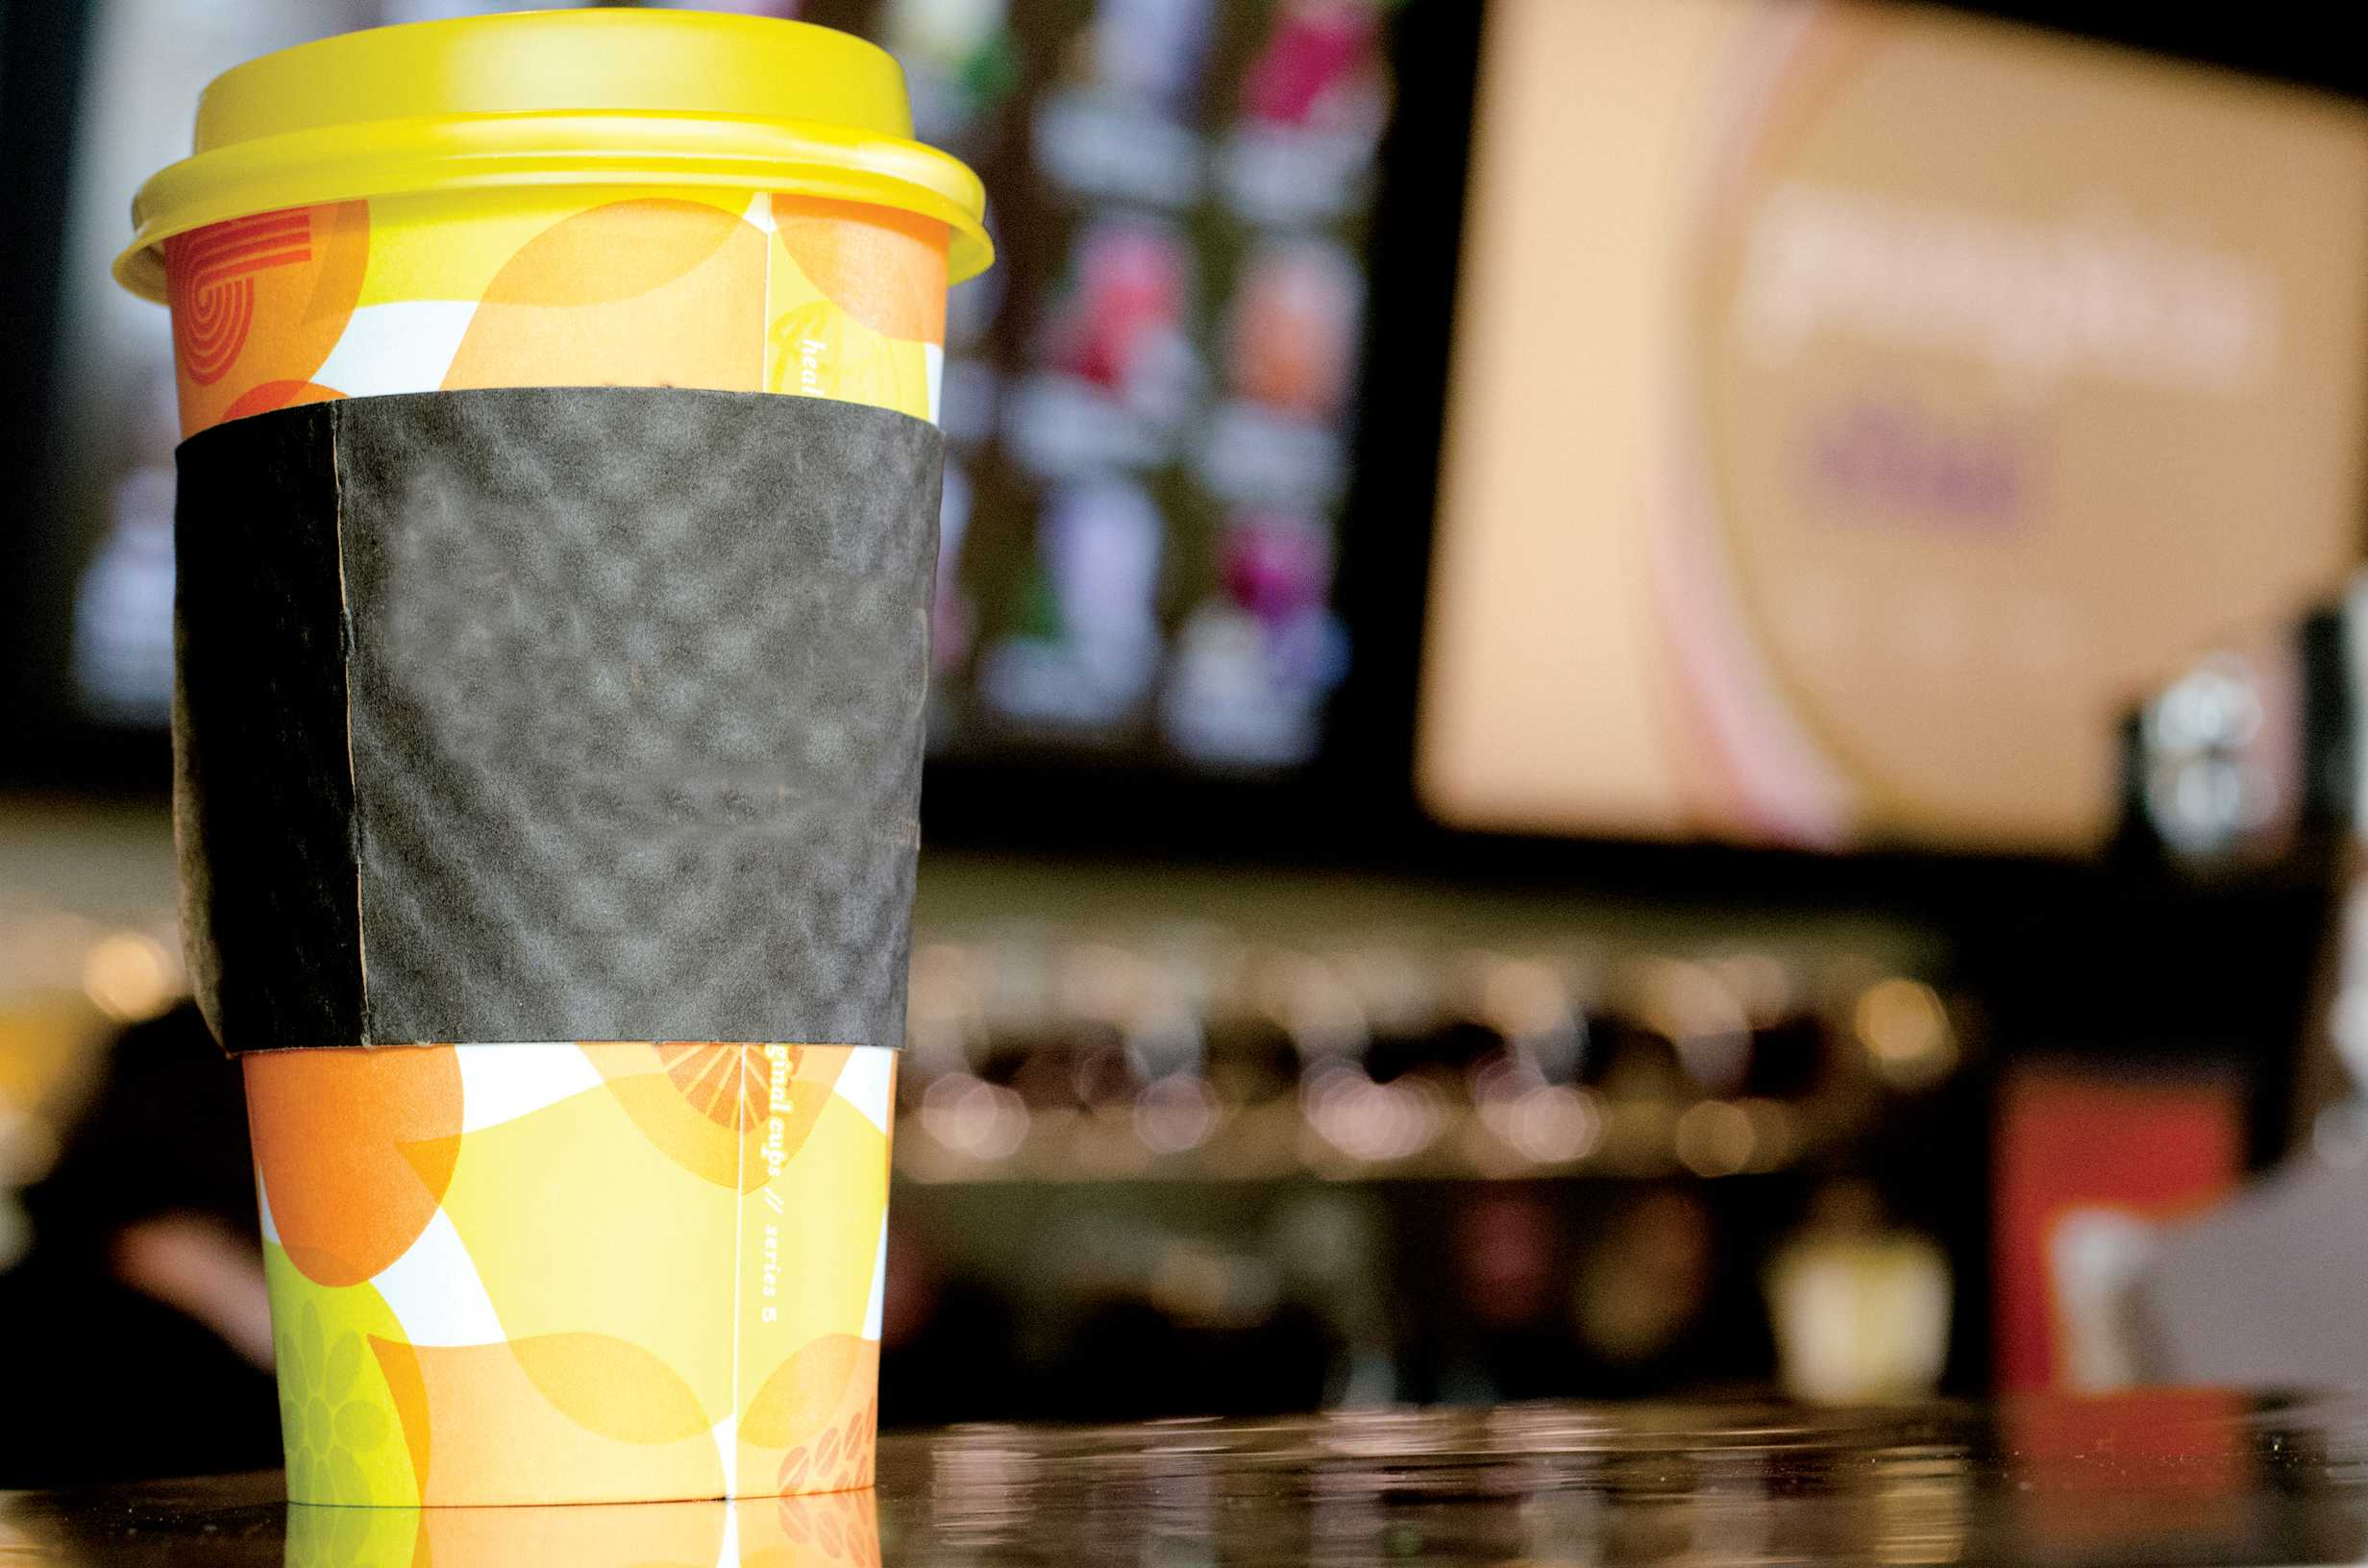 Seasonal coffee drinks can make cold weather more manageable. Many cafes offer a version of the pumpkin spice latte or caramel-flavored drinks.